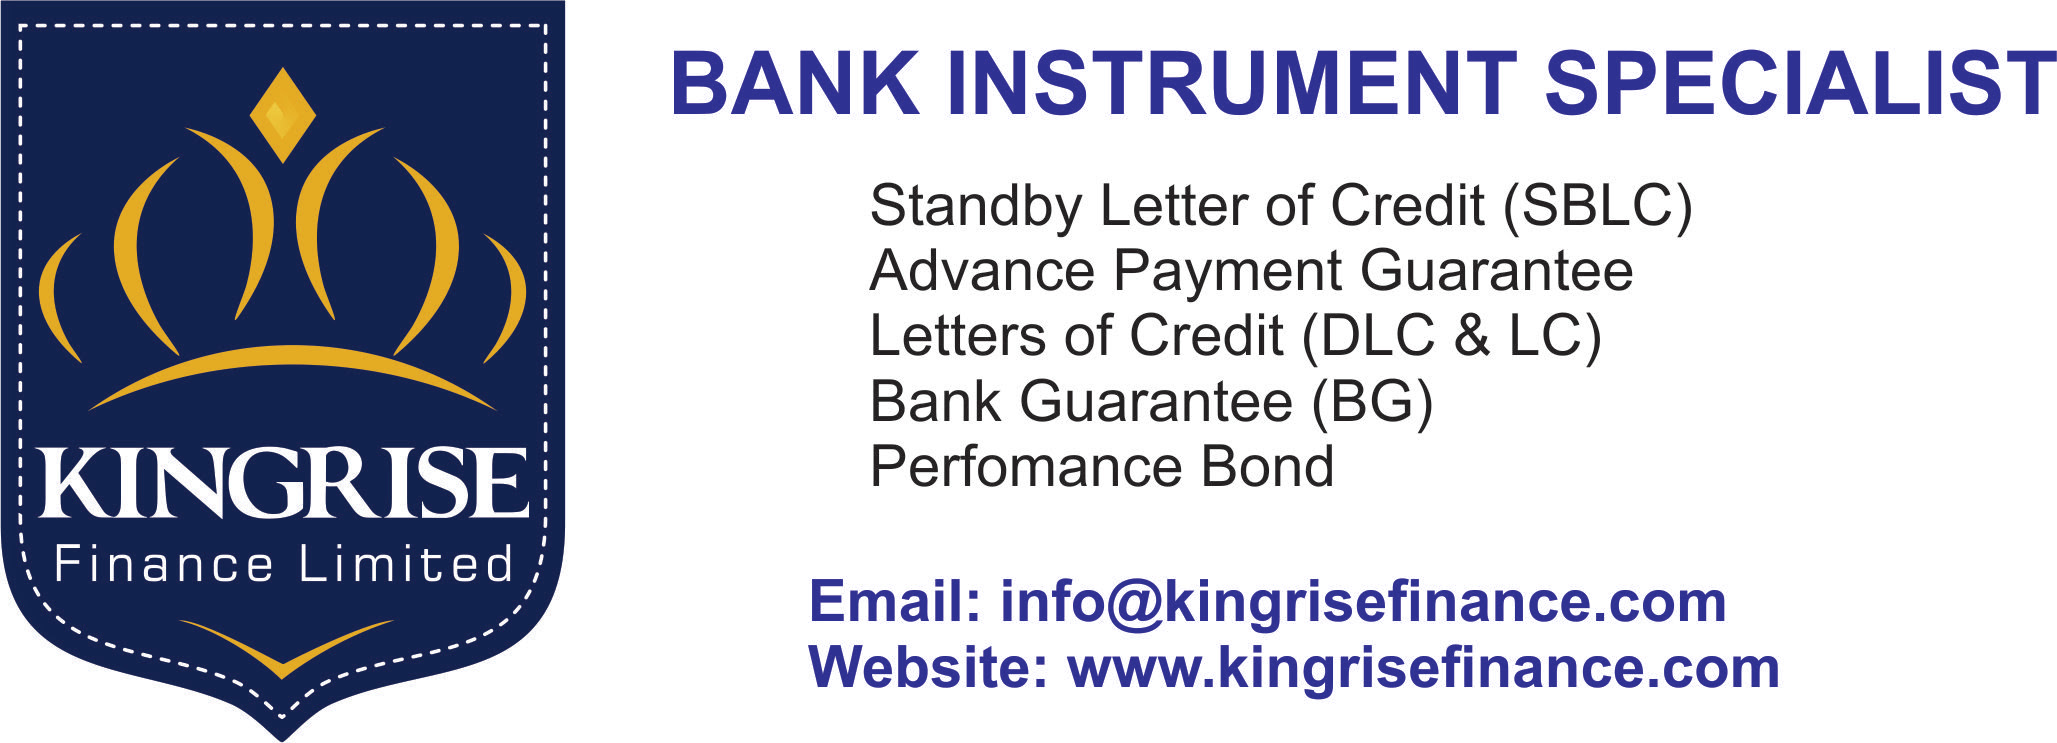 Lease bank instruments, bank instrument providers, leading bank instrument provider, leased bank guarantee providers, international bank guarantee providers, top bank guarantee provider, genuine bank guarantee provider, lease bank guarantee